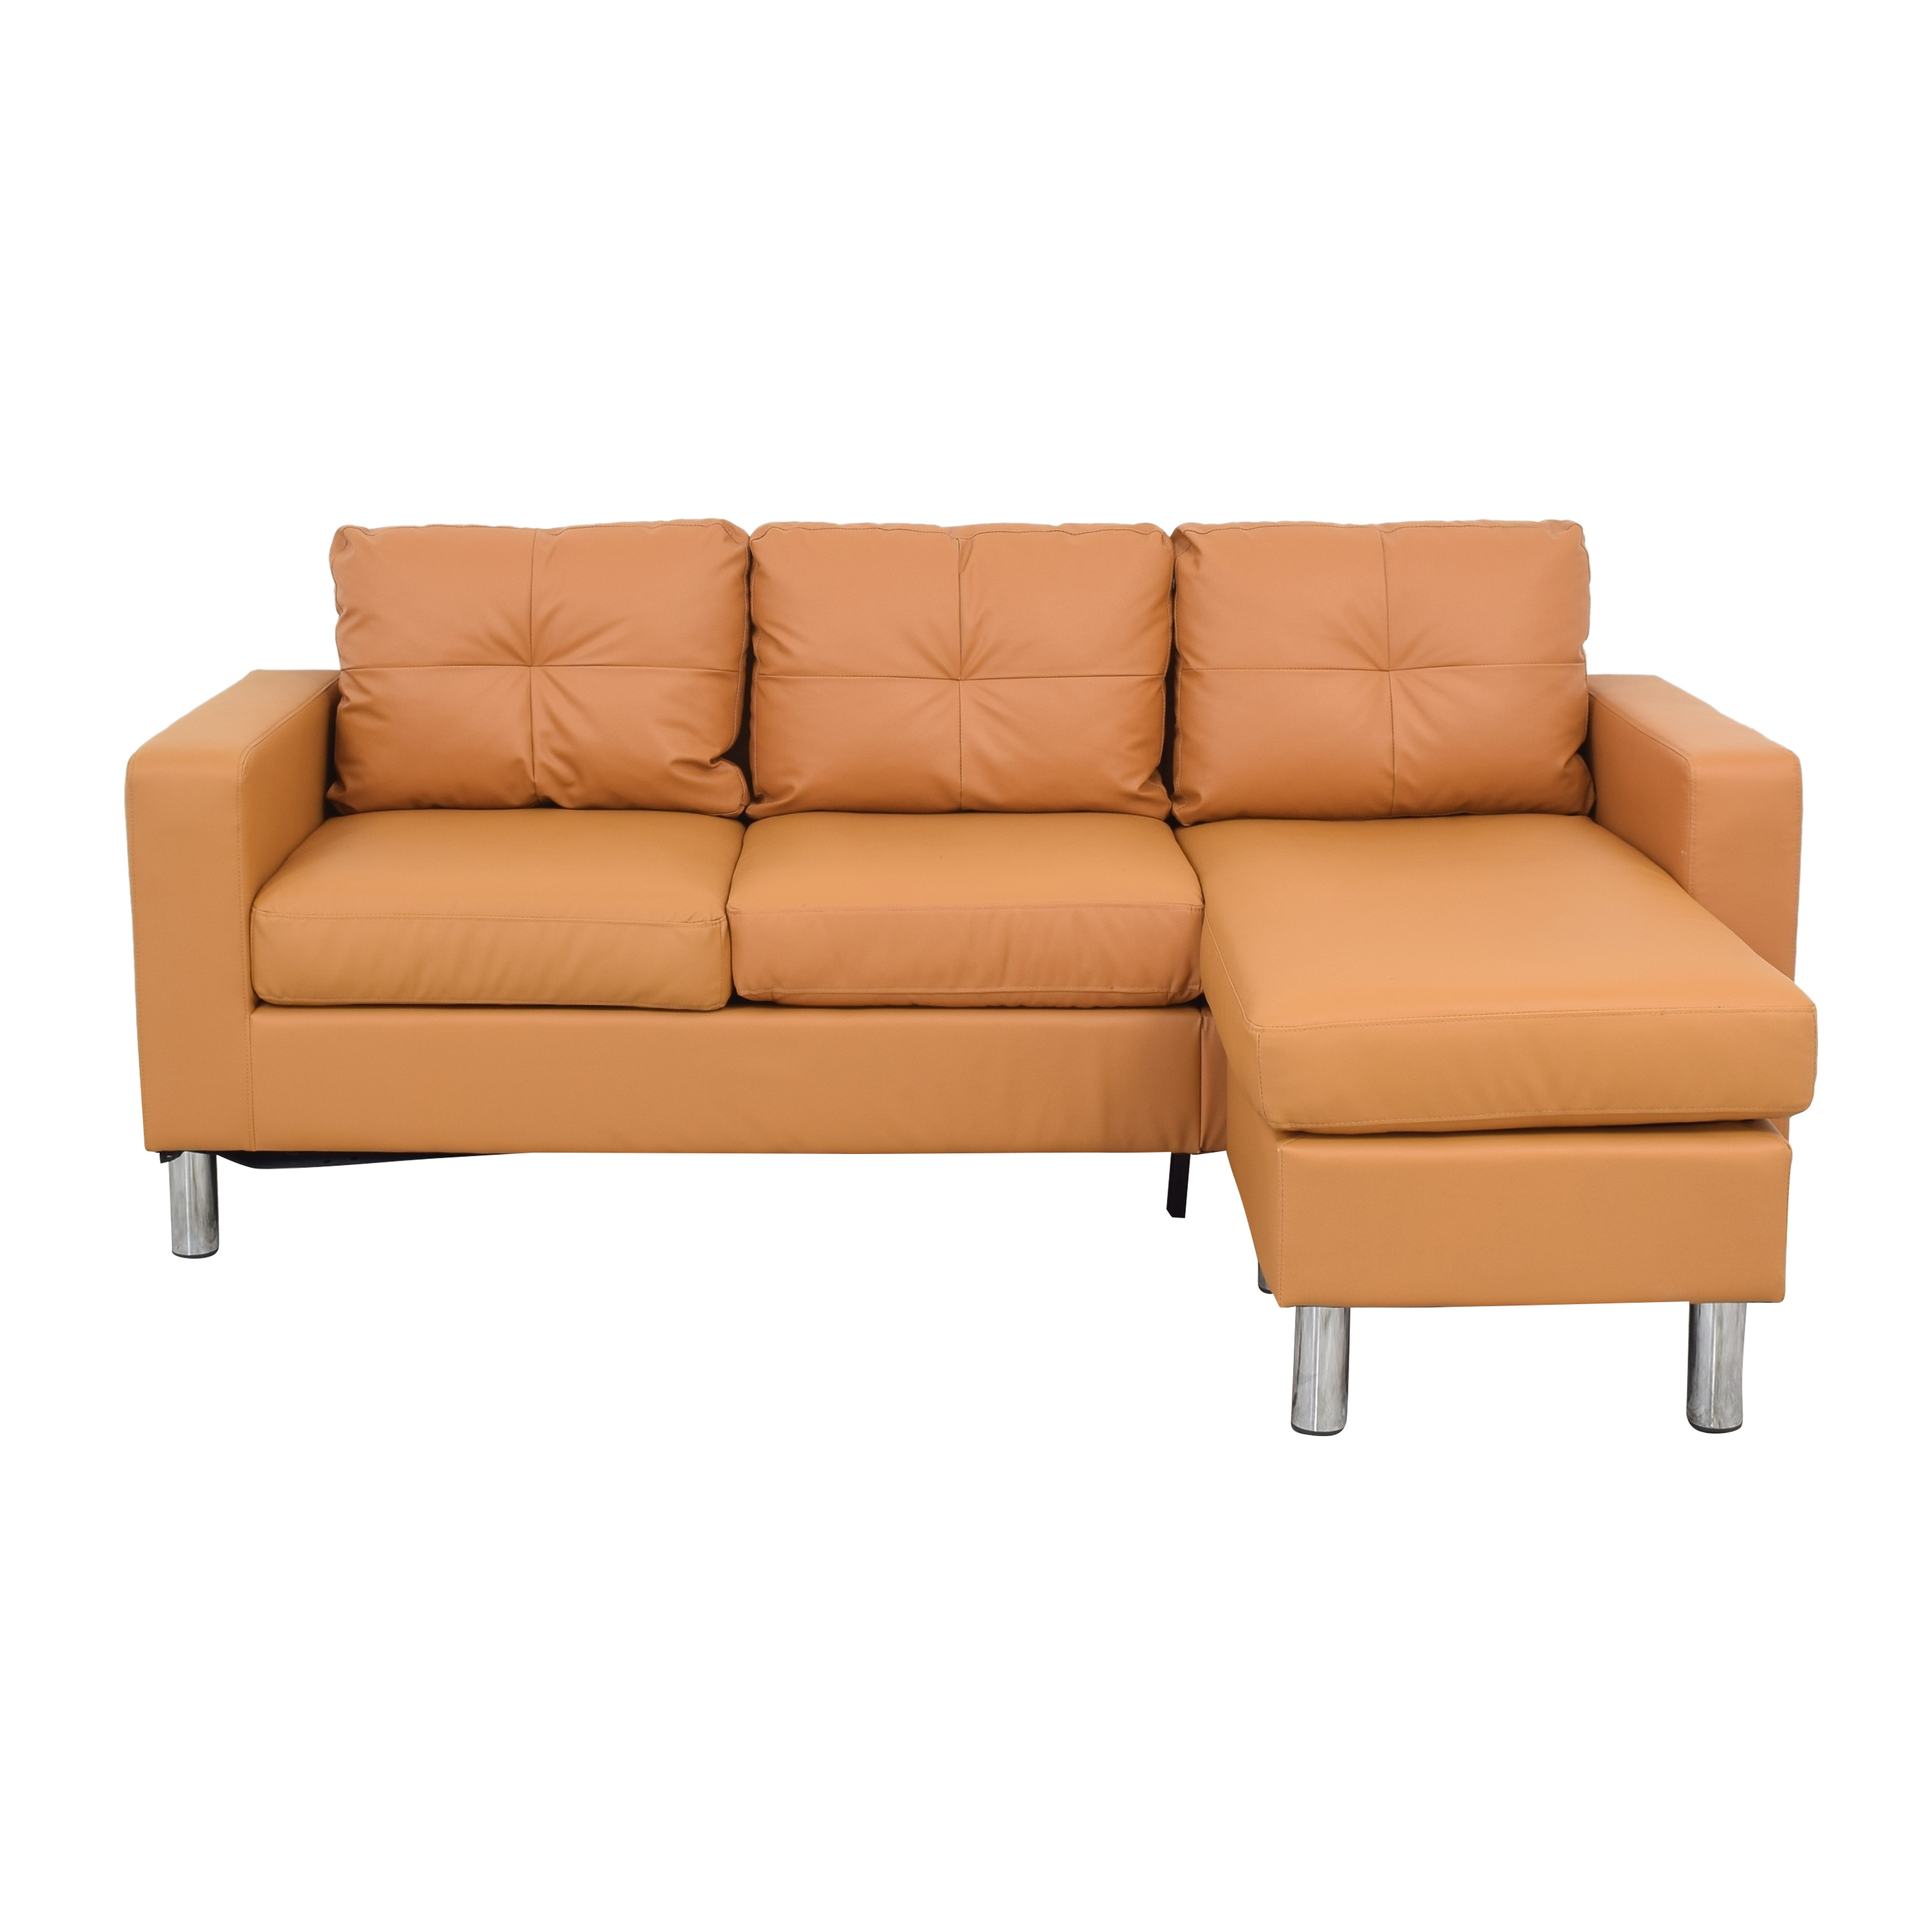 Porch & Den Ropson Sectional Sofa Porch & Den